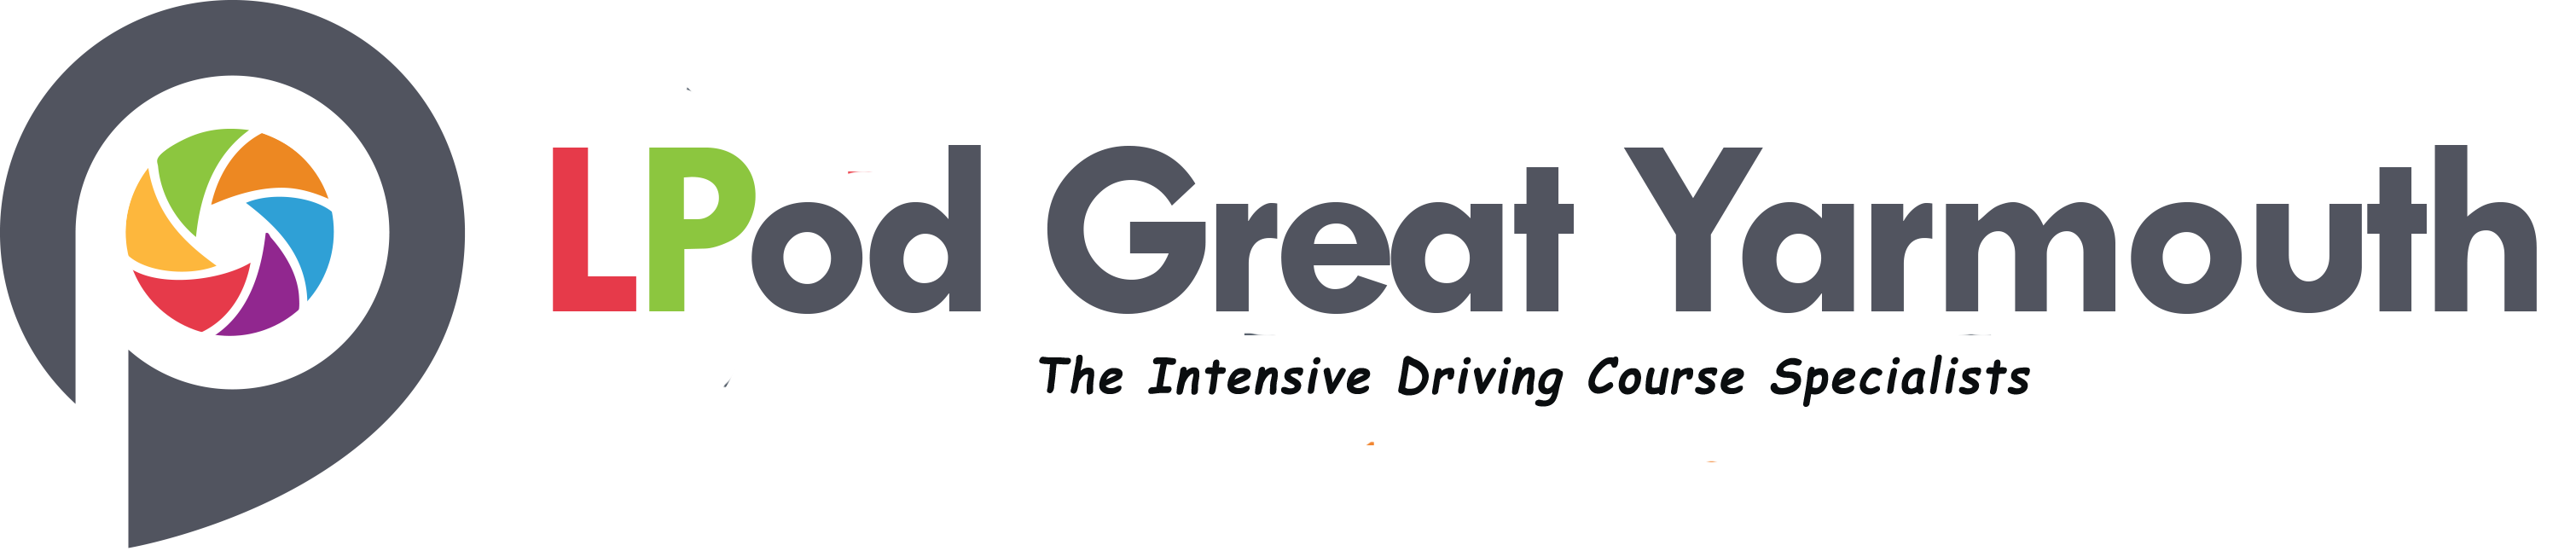 intensive driving courses great yarmouth